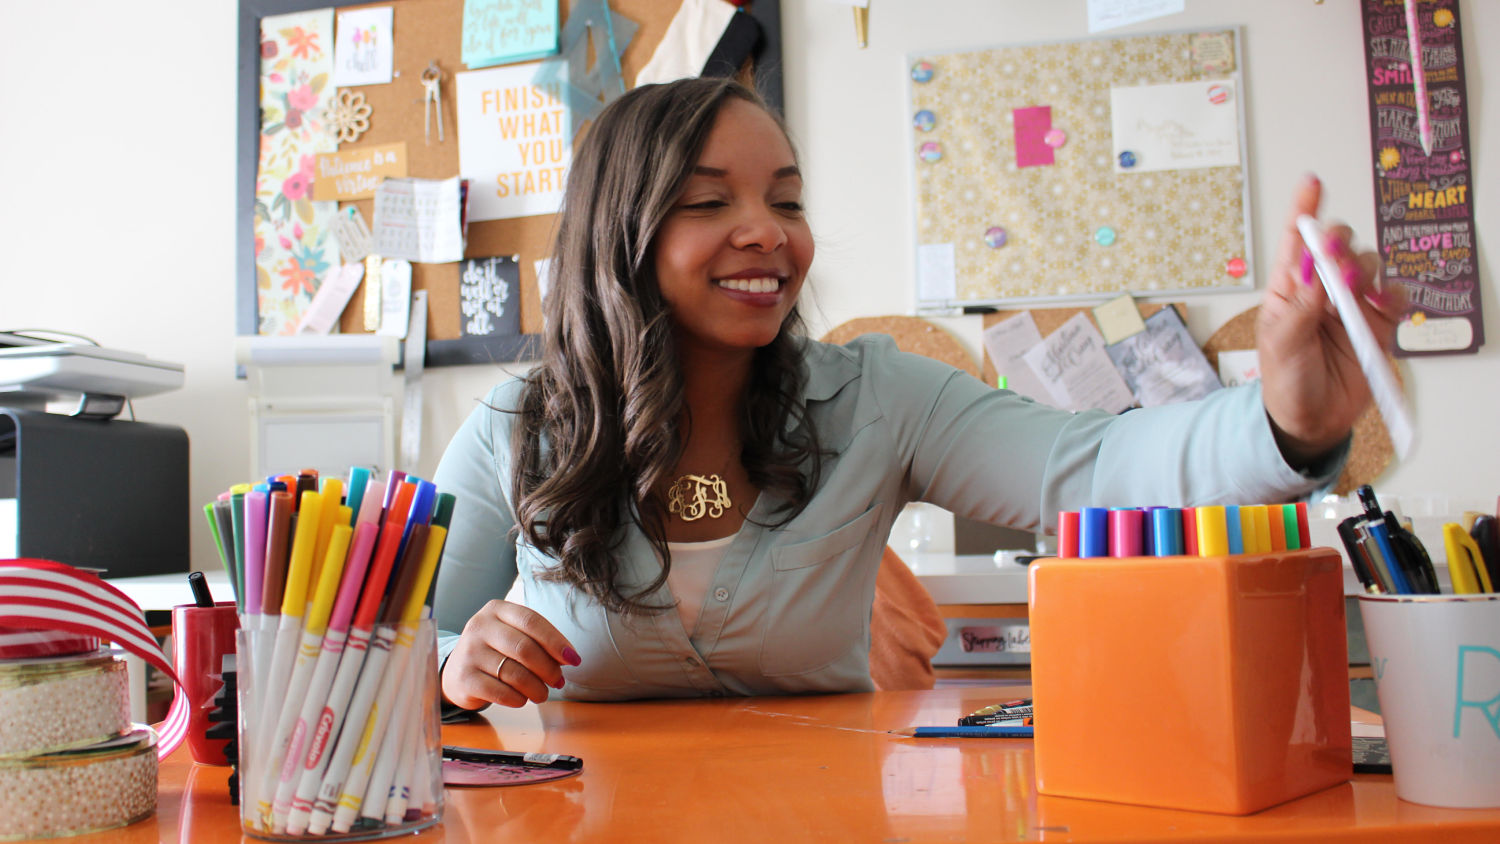 Wilson College of Textiles alumna Jasmine Flood at desk with colorful markers